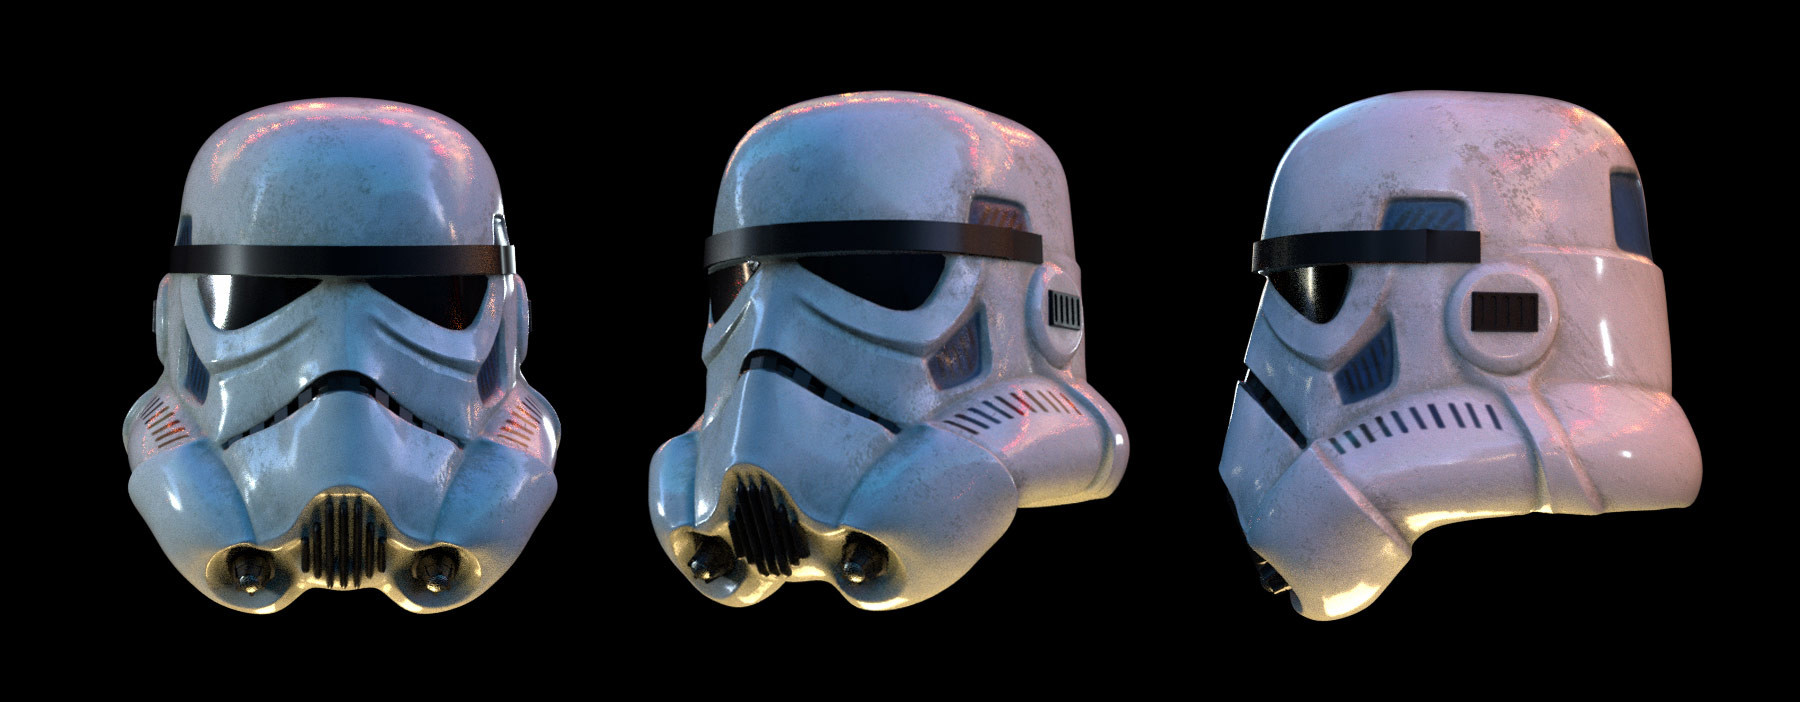 Storm trooper helmet render